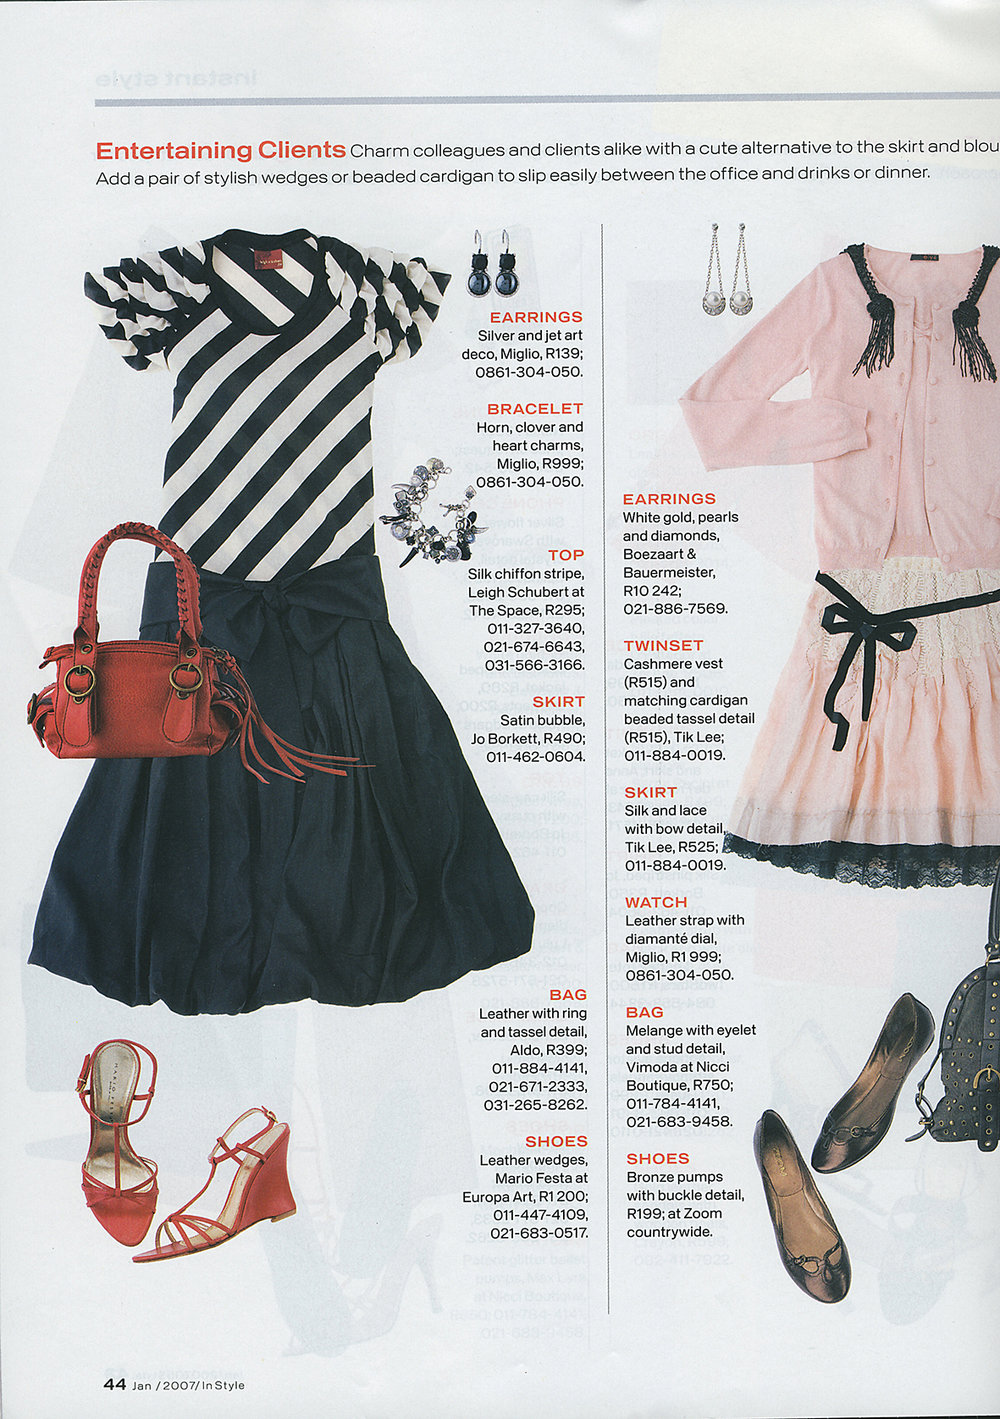 INSTYLE JAN 2007